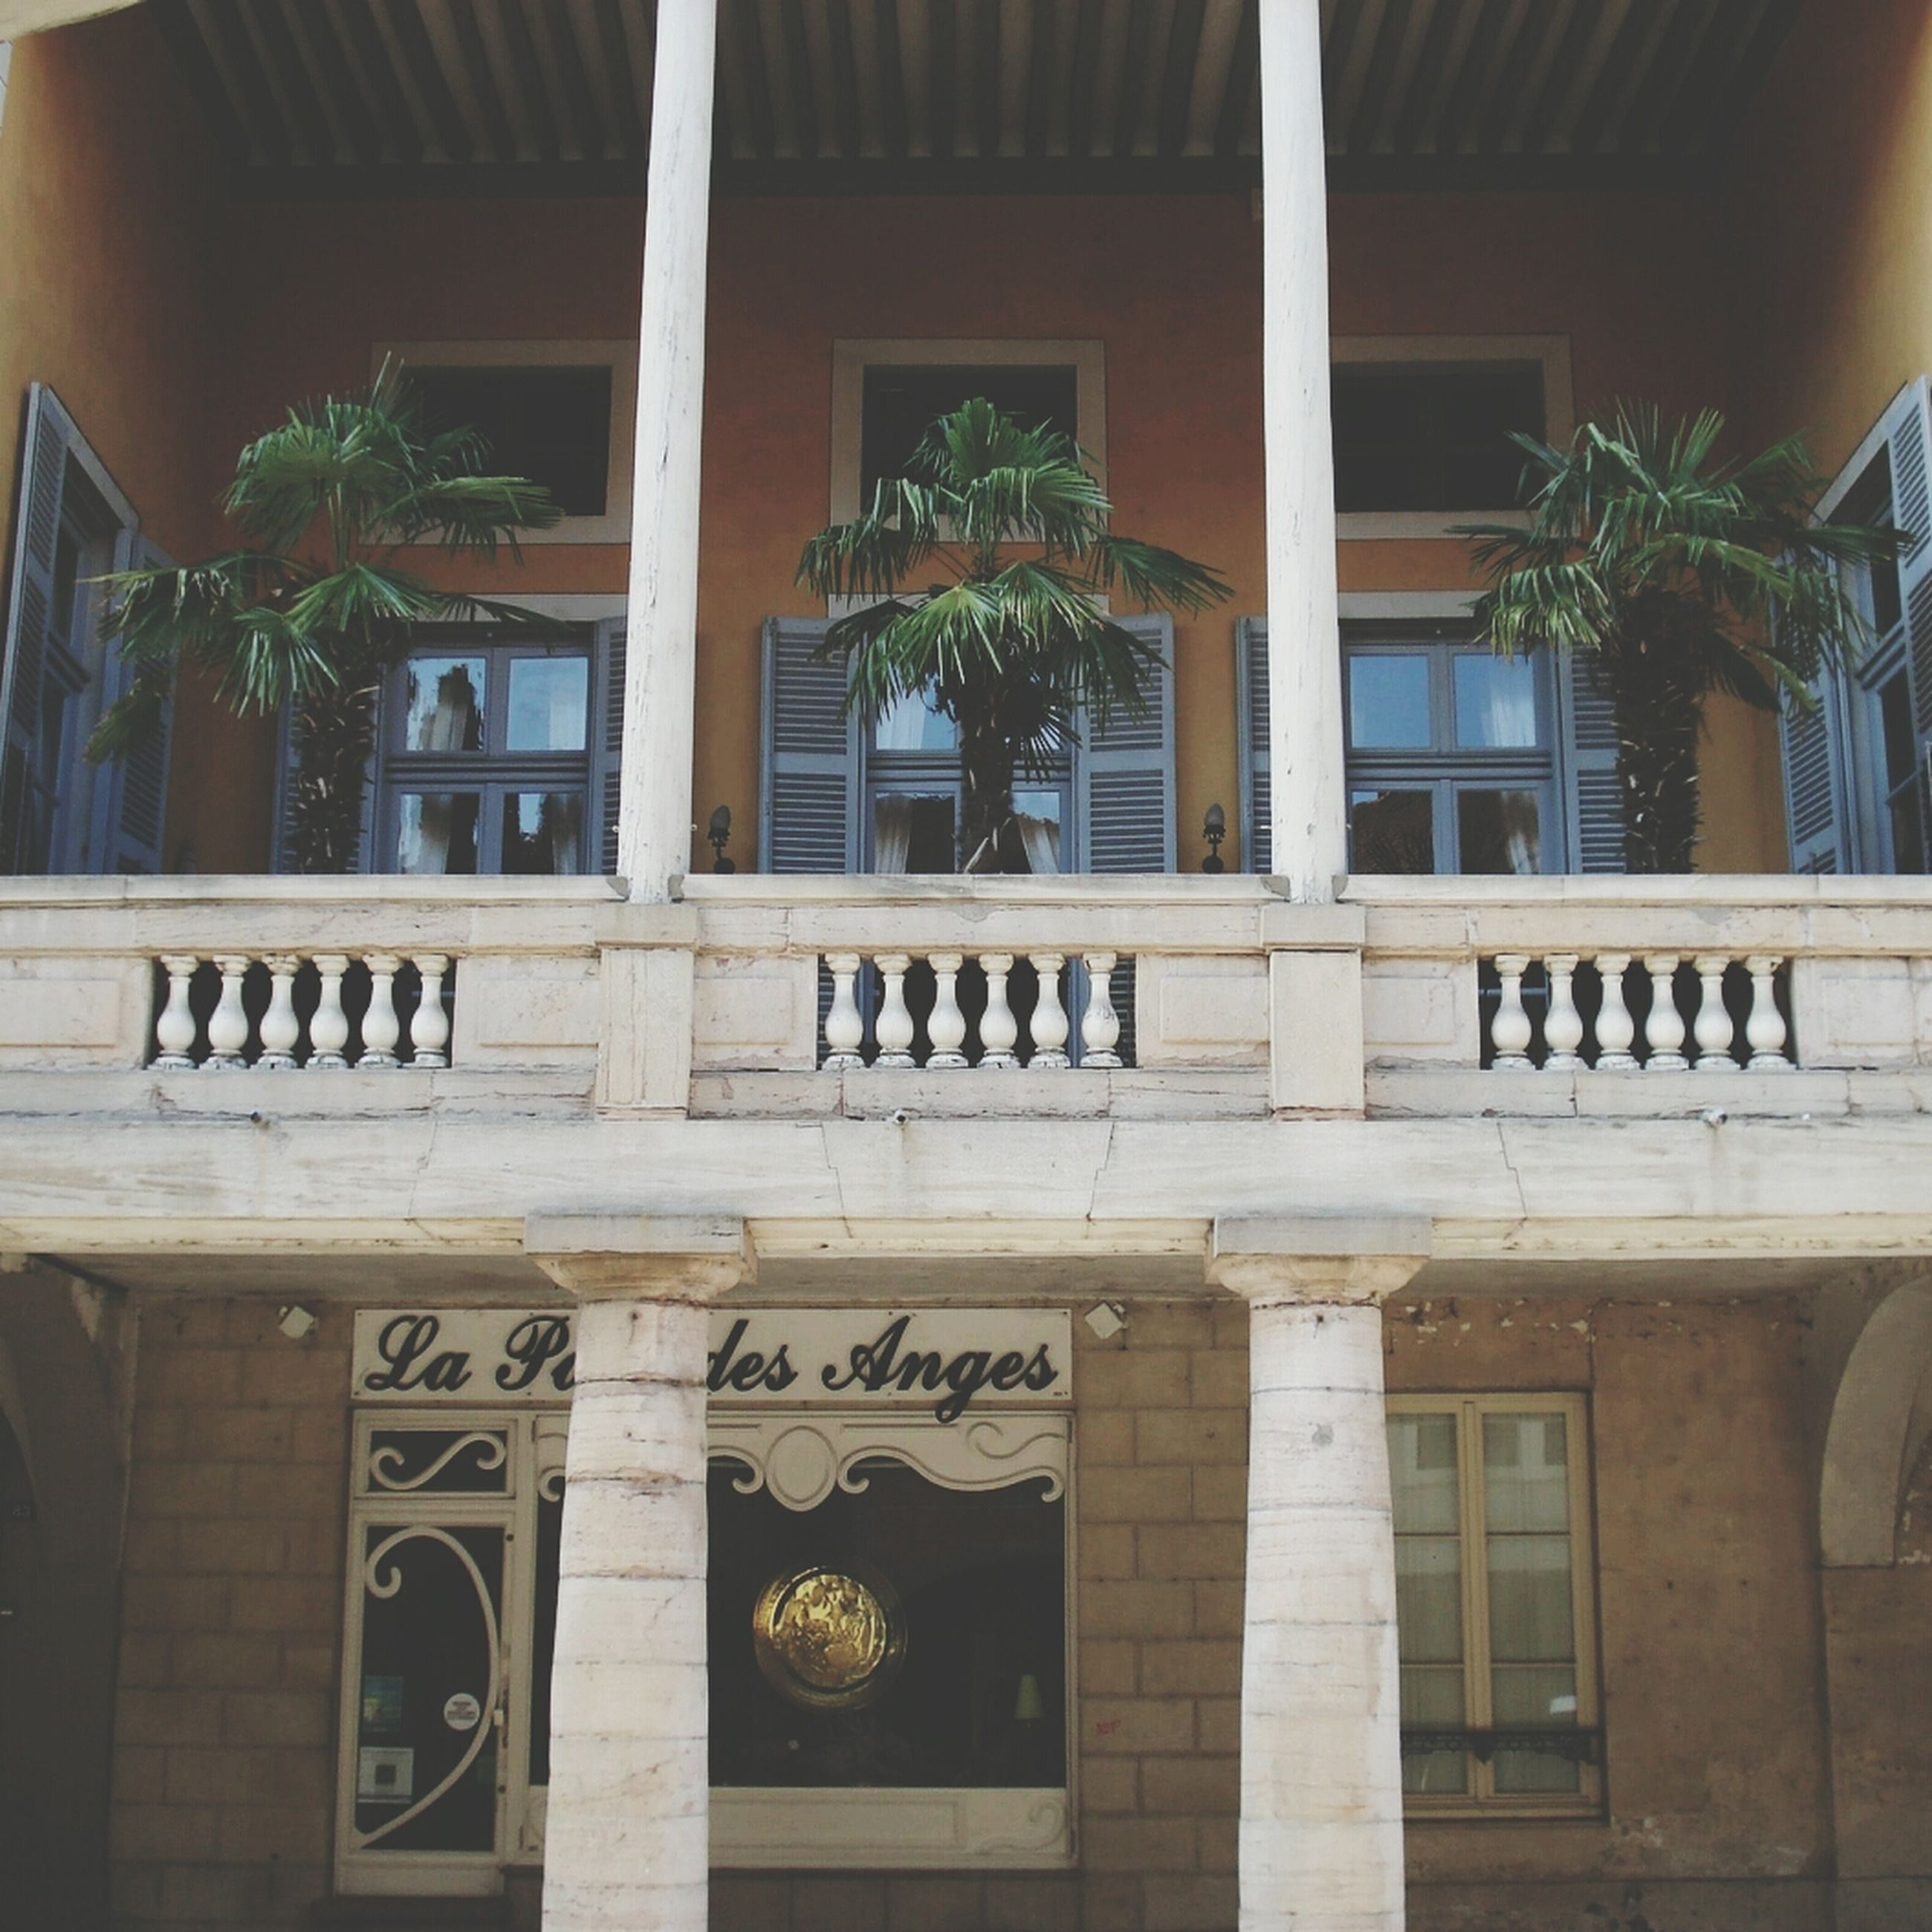 architecture, built structure, building exterior, window, text, tree, western script, building, potted plant, house, no people, day, facade, residential building, outdoors, entrance, low angle view, palm tree, plant, growth